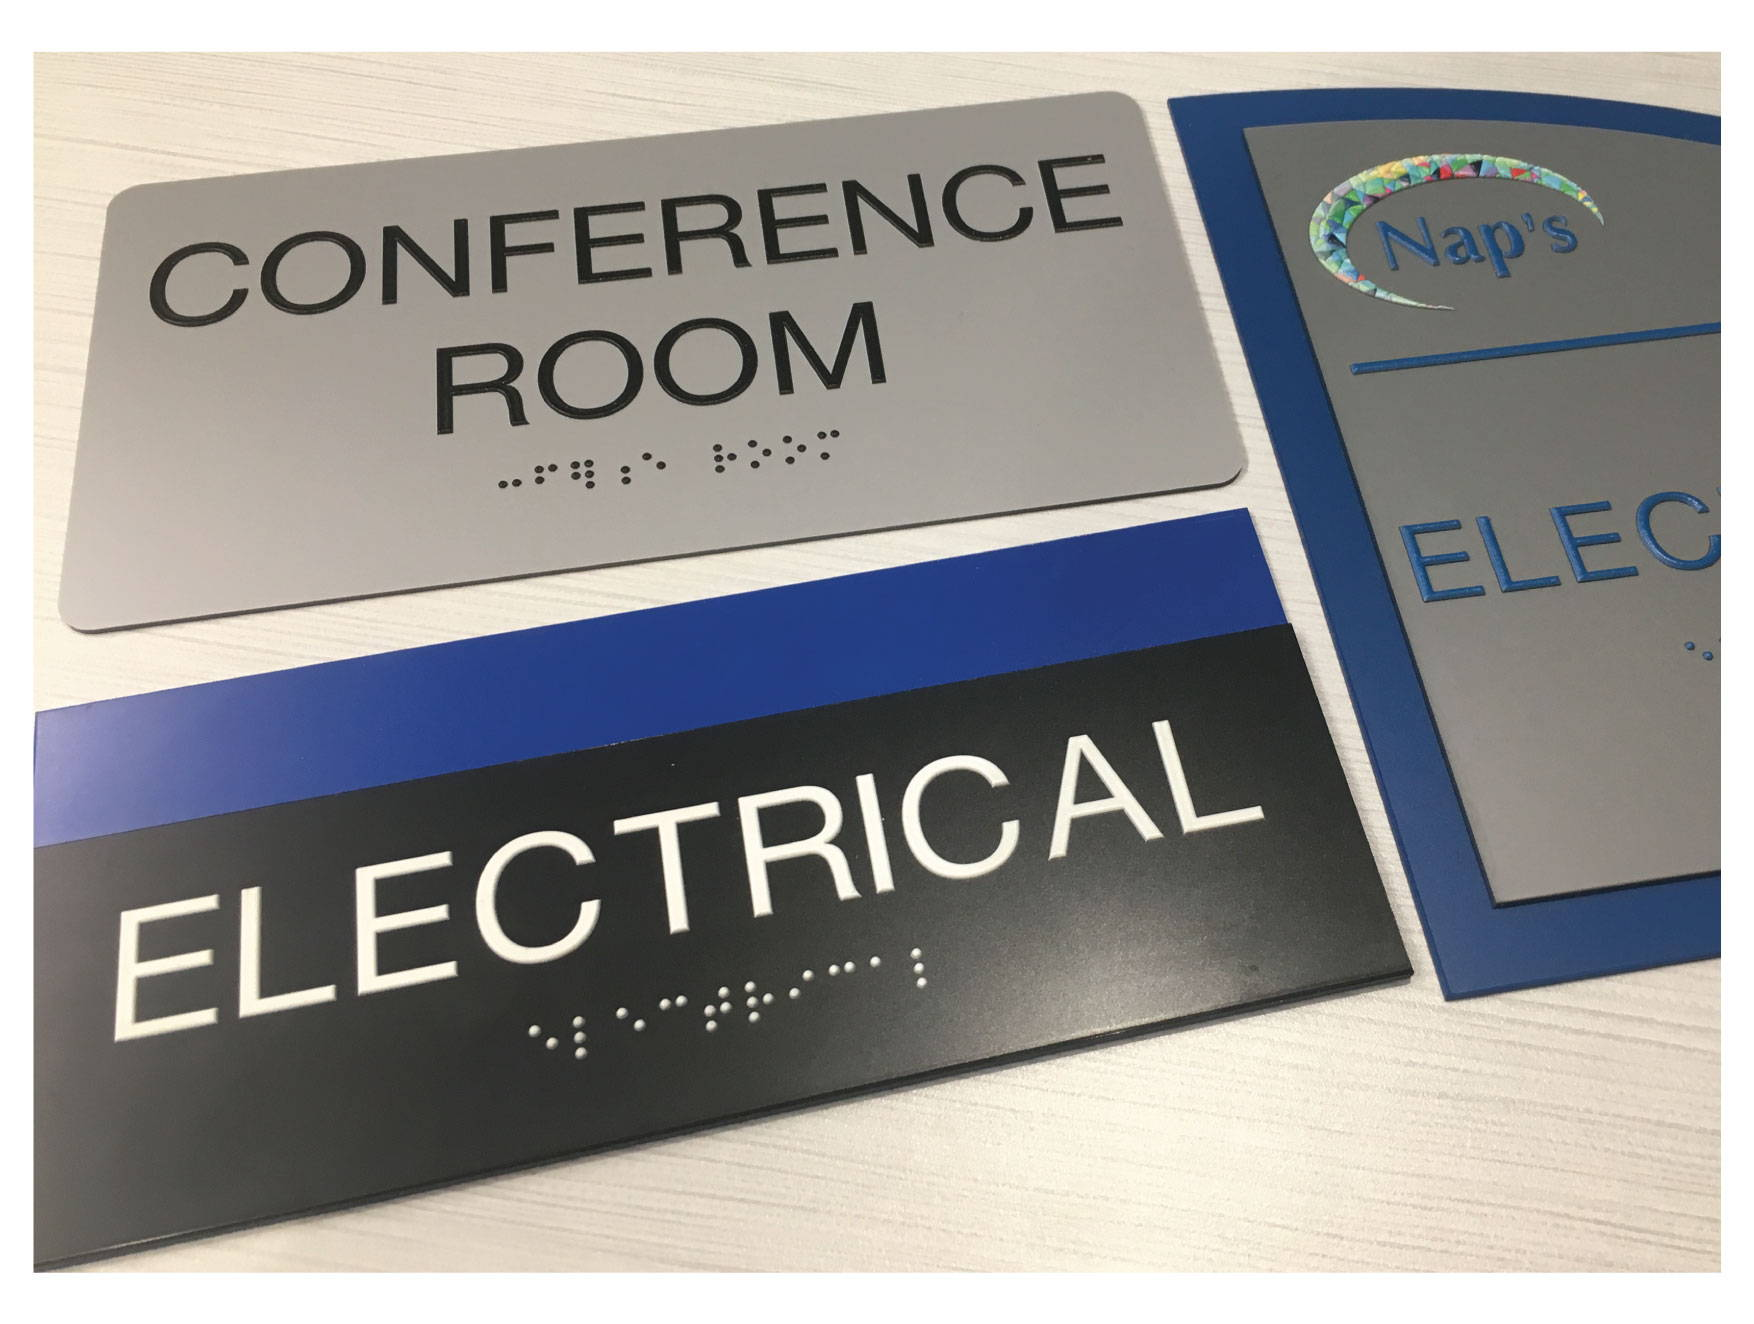 ADA Custom Room Name Signs with Grade II Braille, Compliant ADA Signs